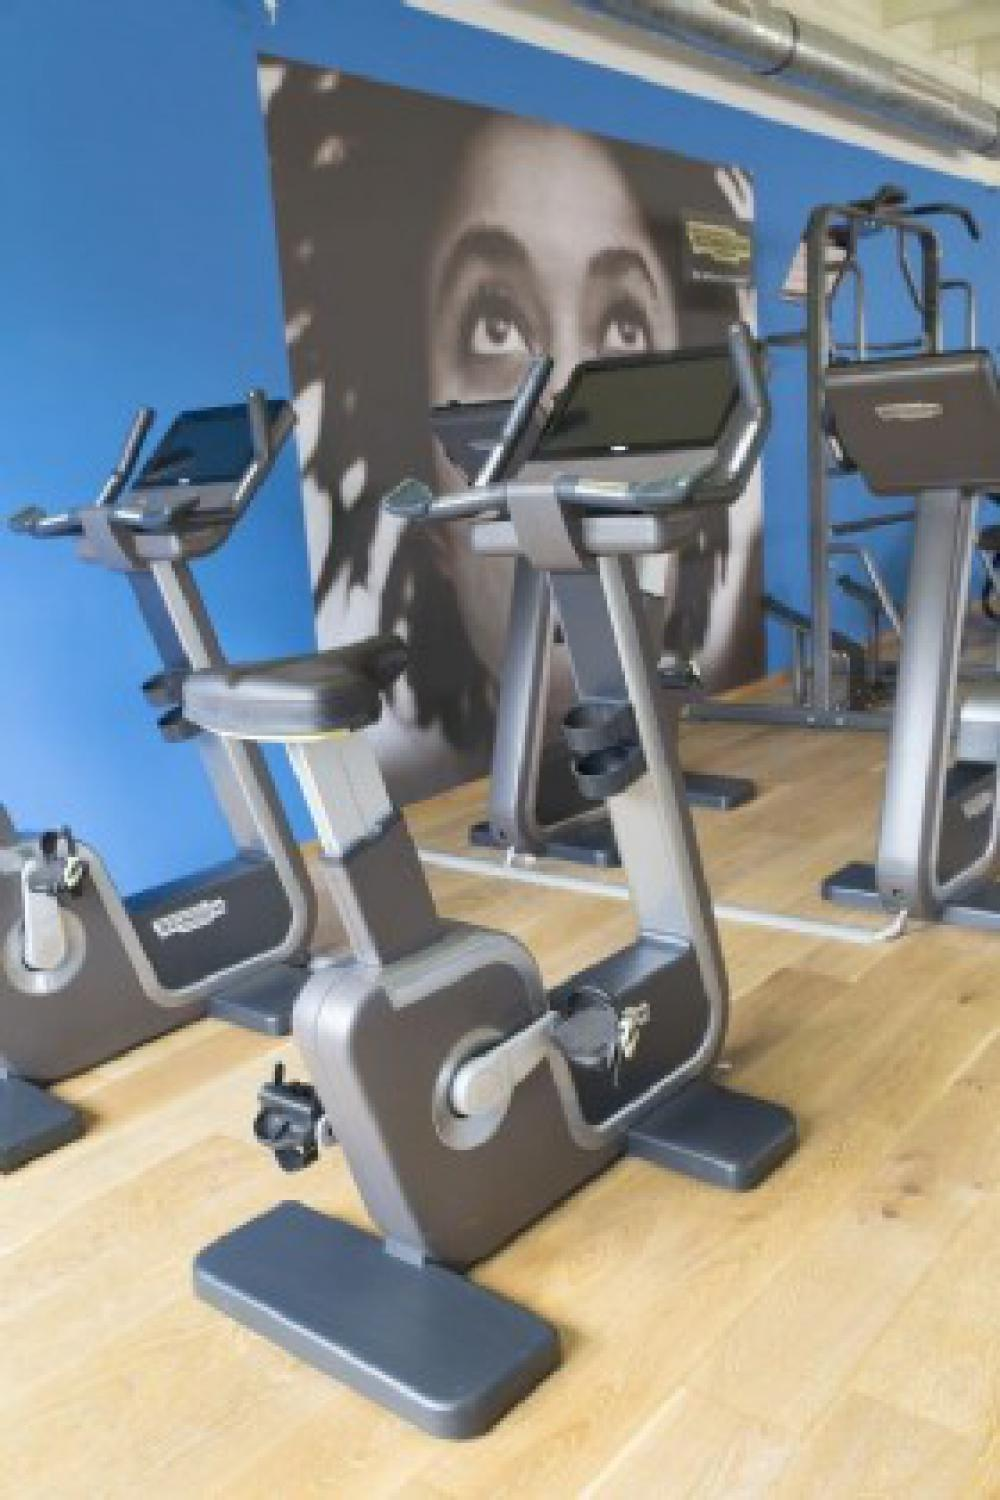 Home City Fitness Nonstop Edition Spittal an der Drau